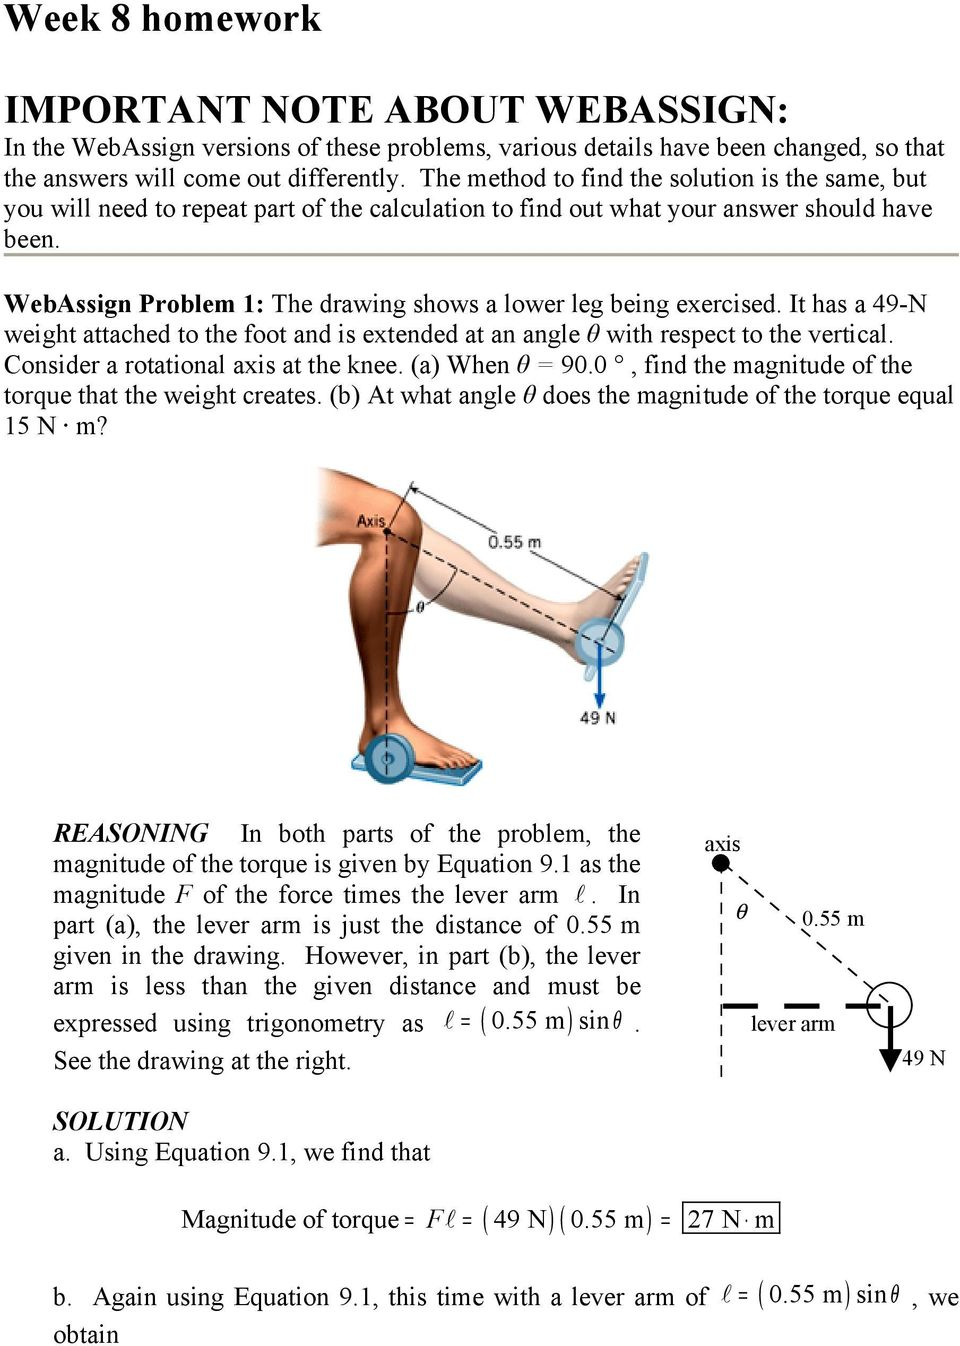 WebAssign Problem : The drawing shows a lower leg being exercised. It has a 49-N weight attached to the foot and is extended at an angle θ with respect to the vertical.